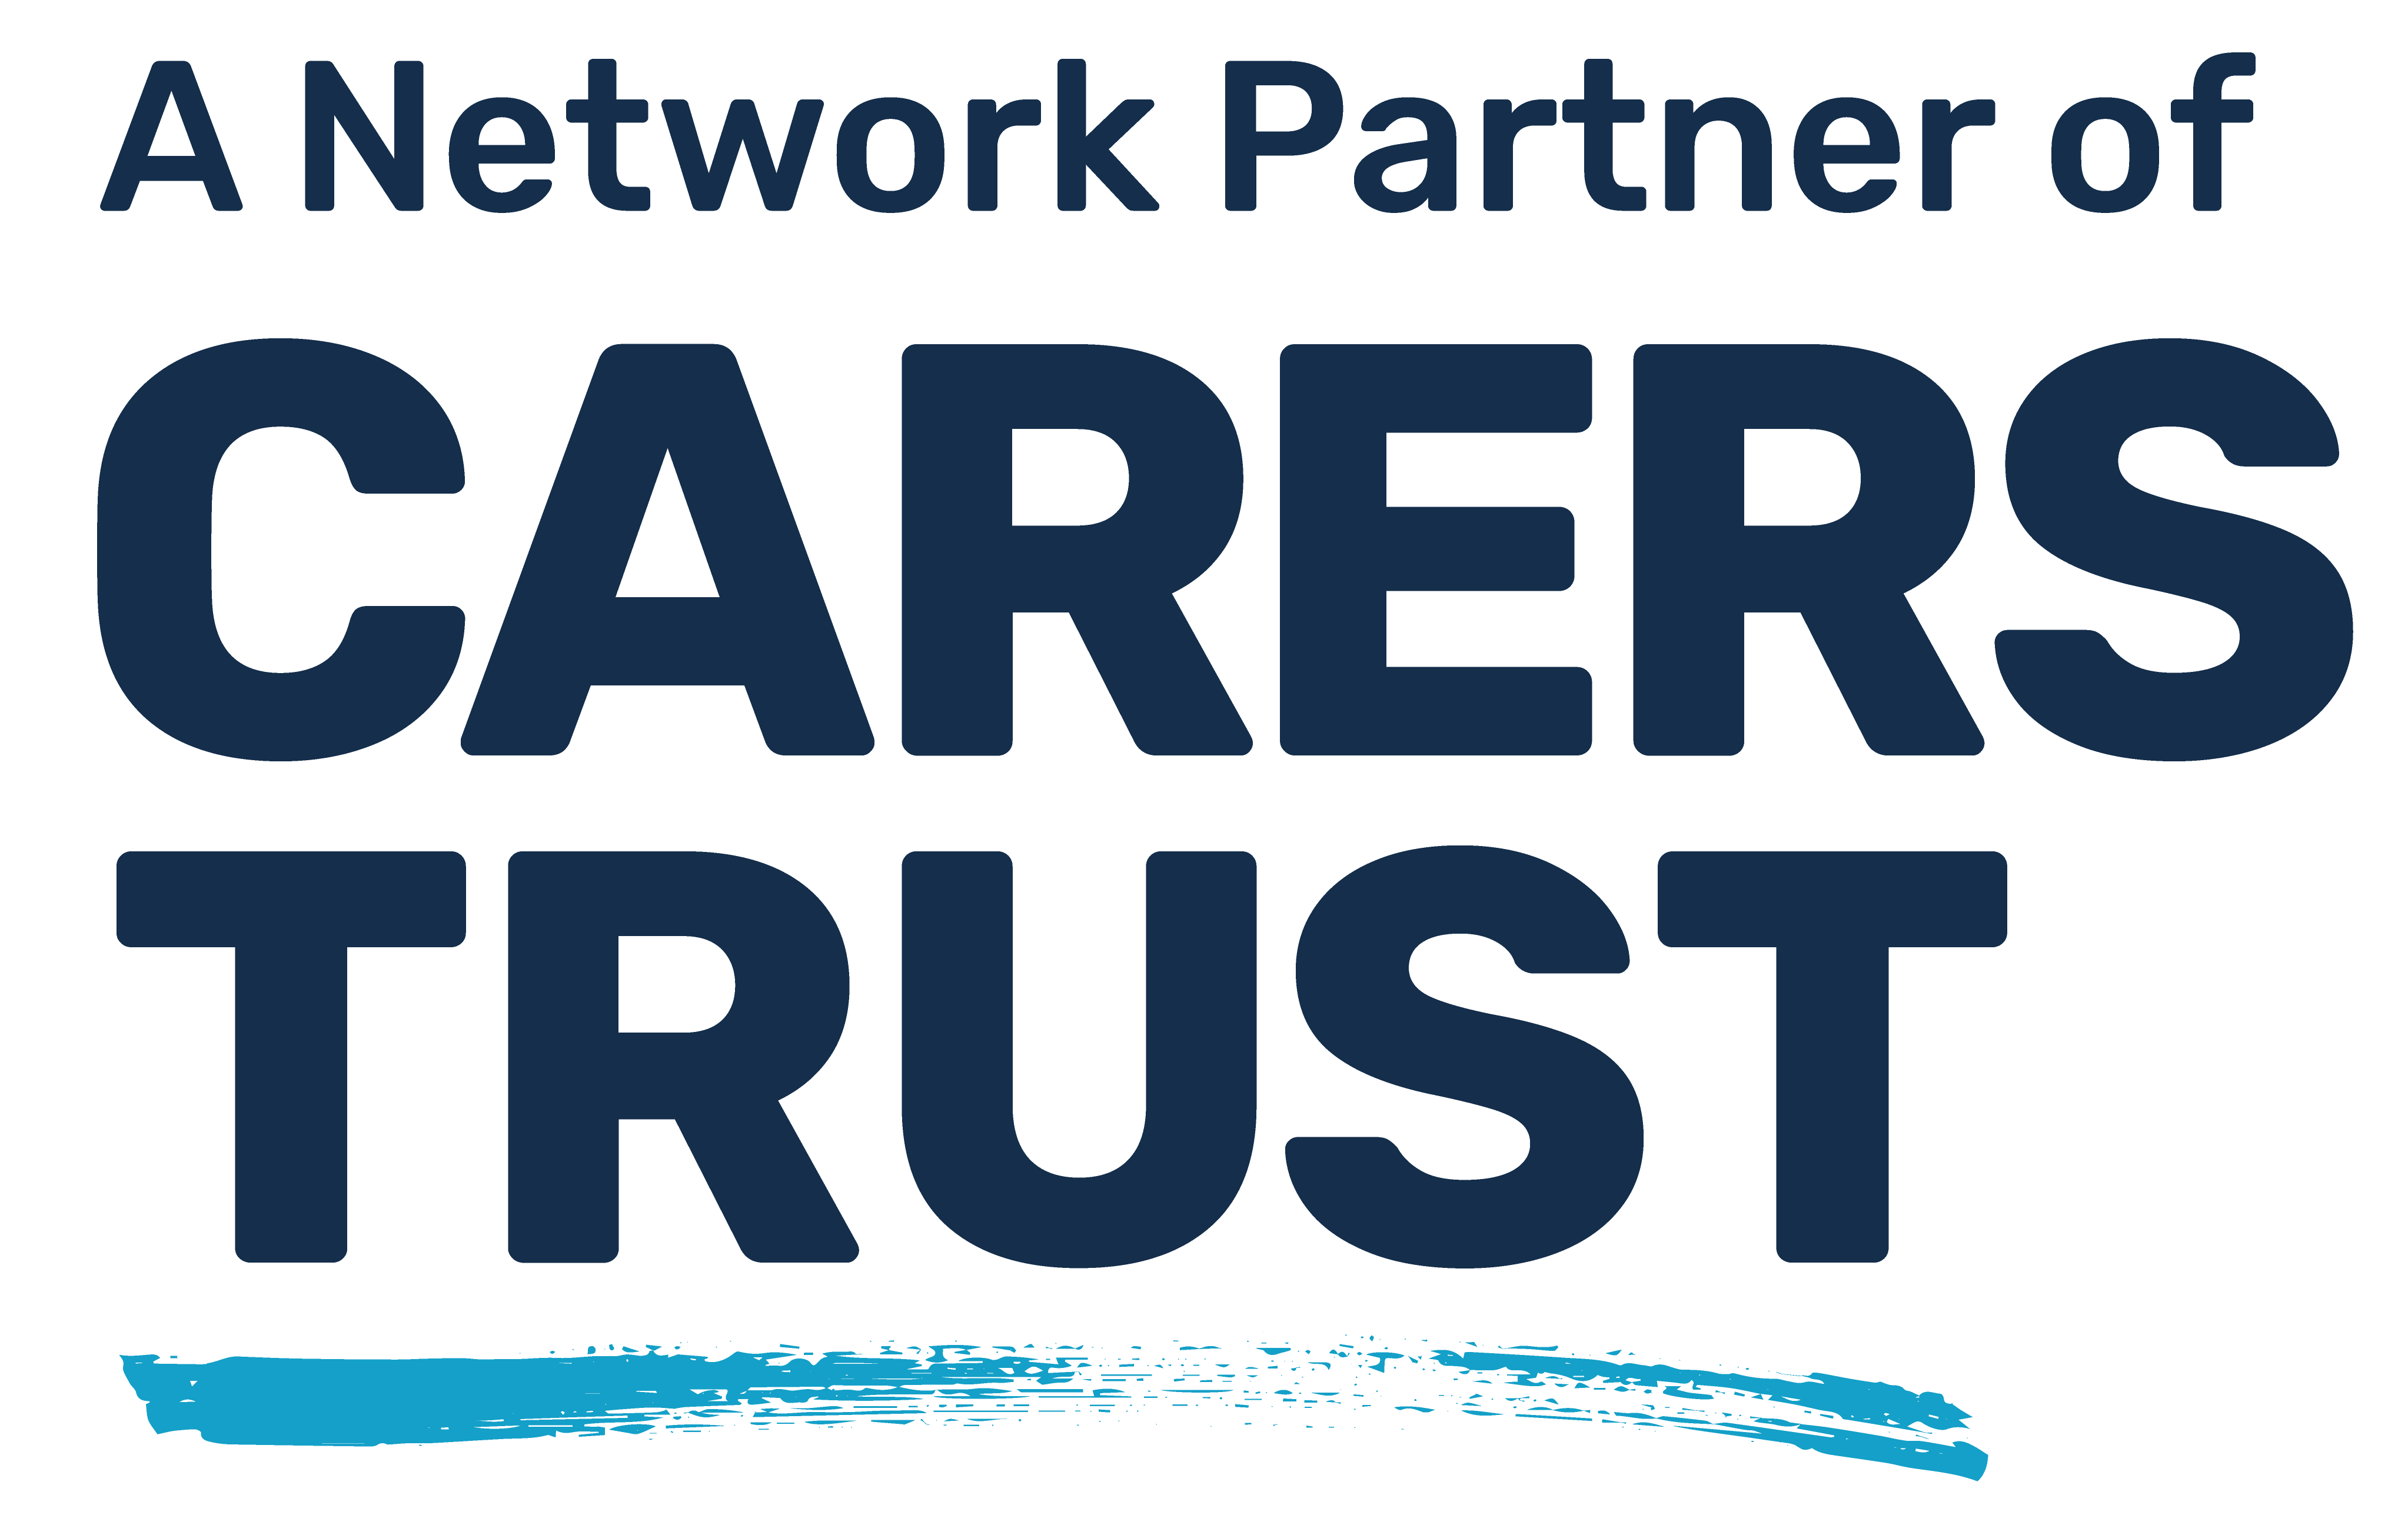 carerstrust_network